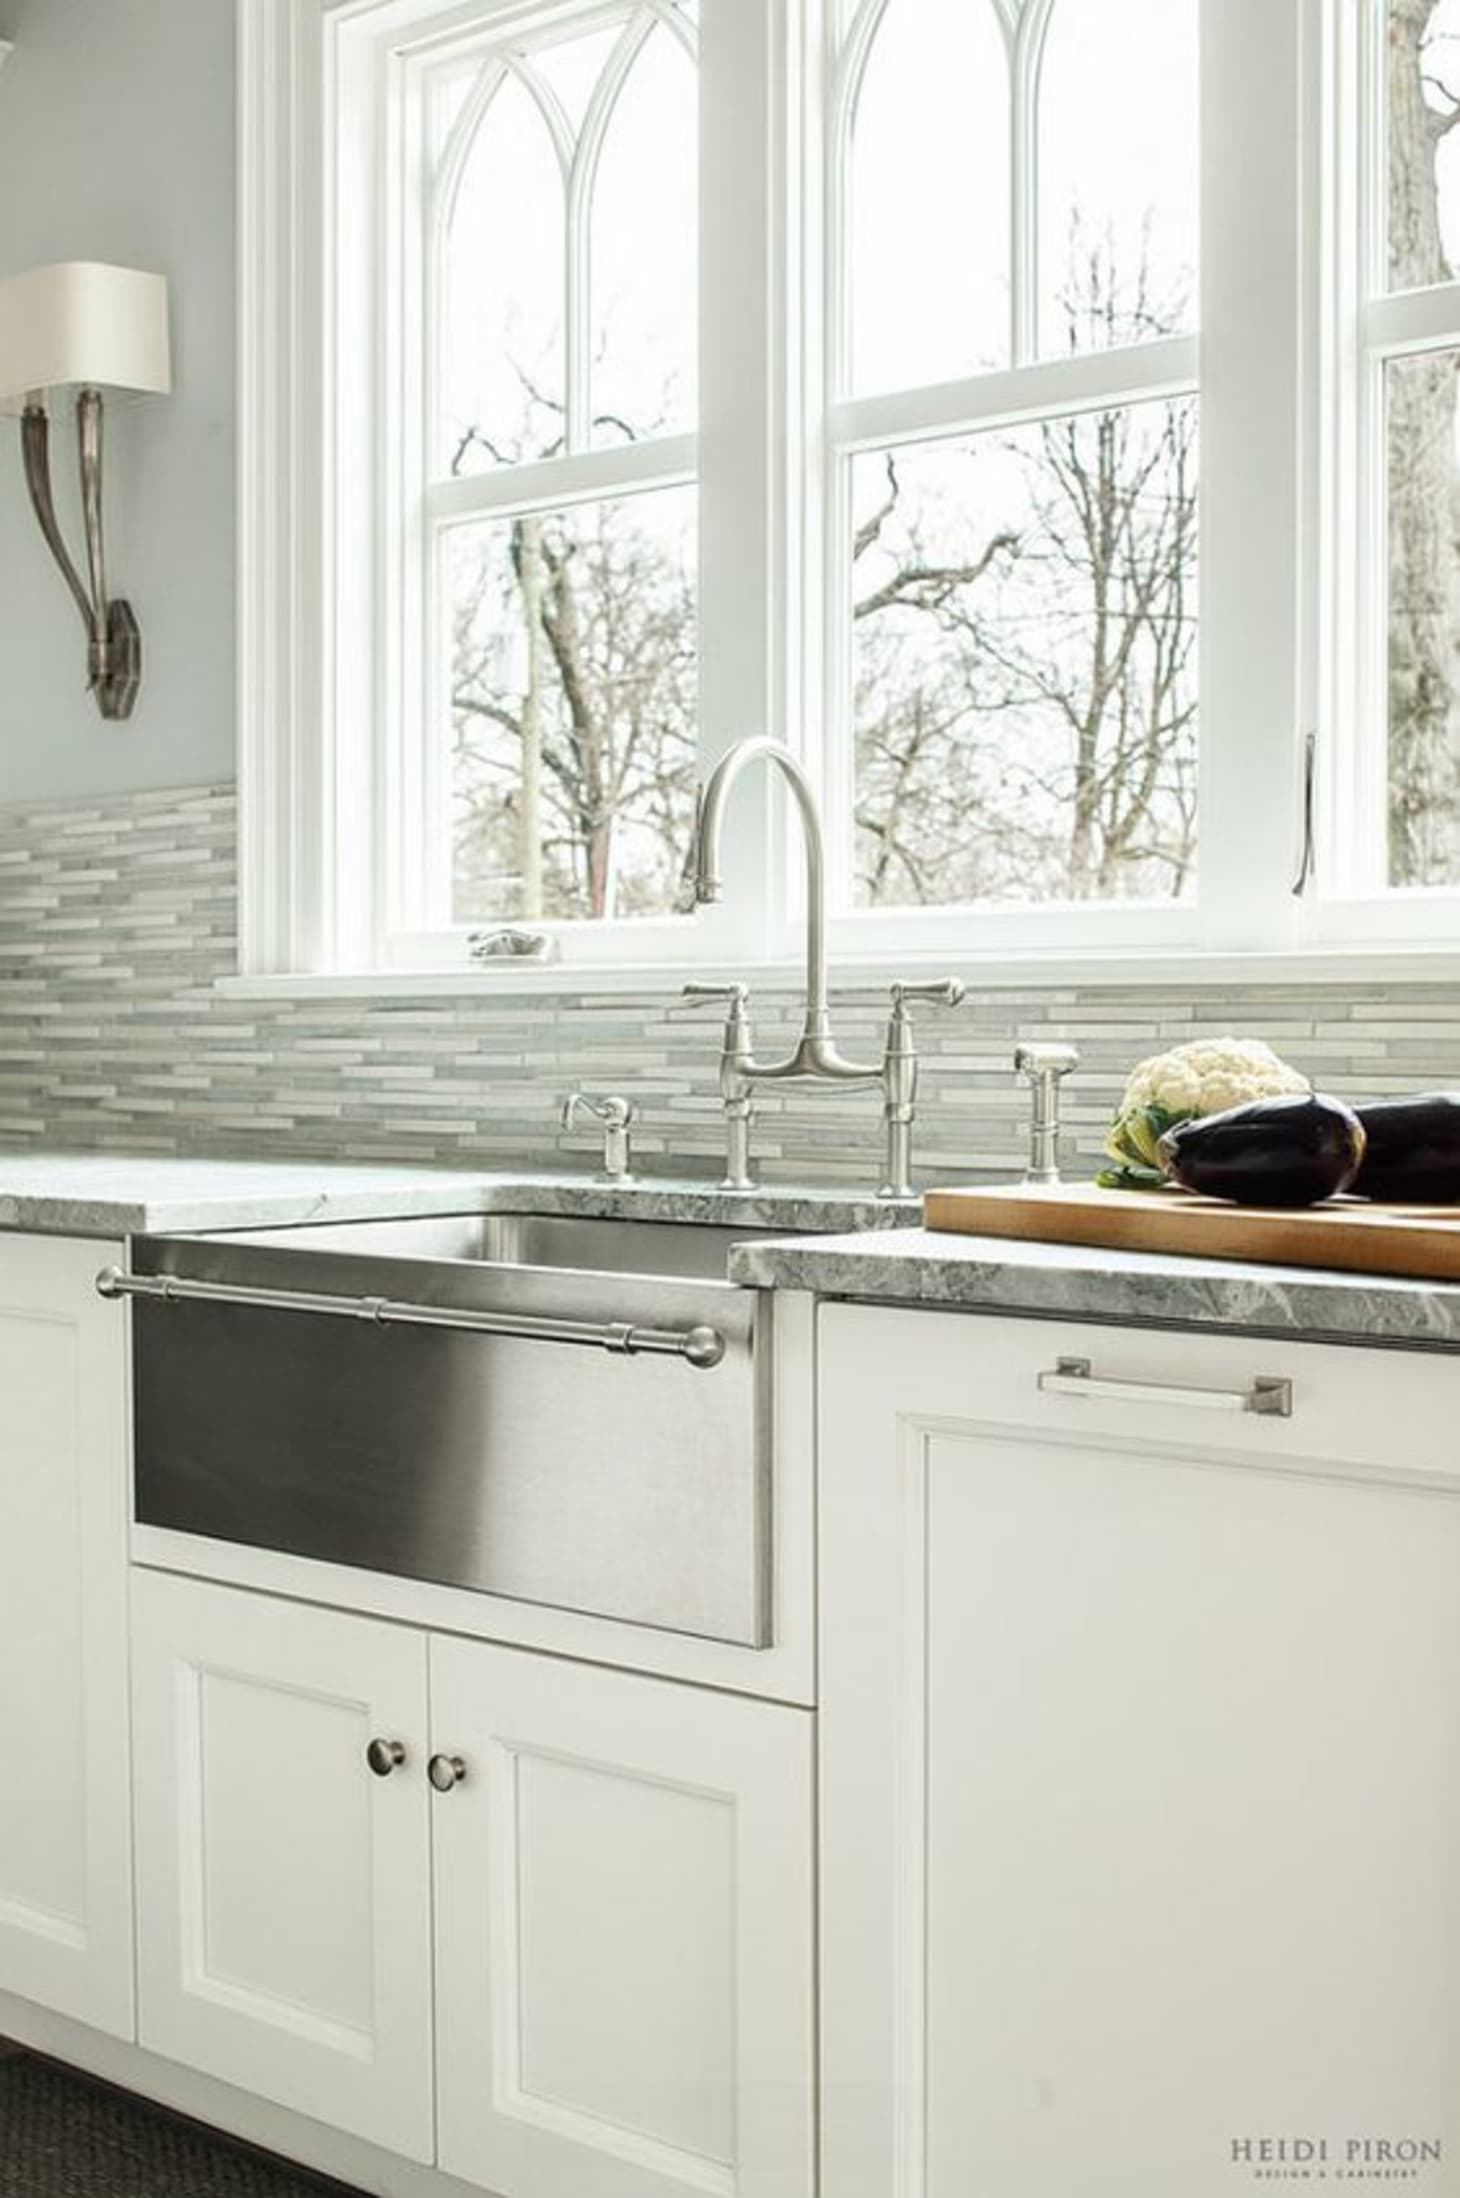 Farmhouse or Apron Sinks: Everything You Need to Know ...